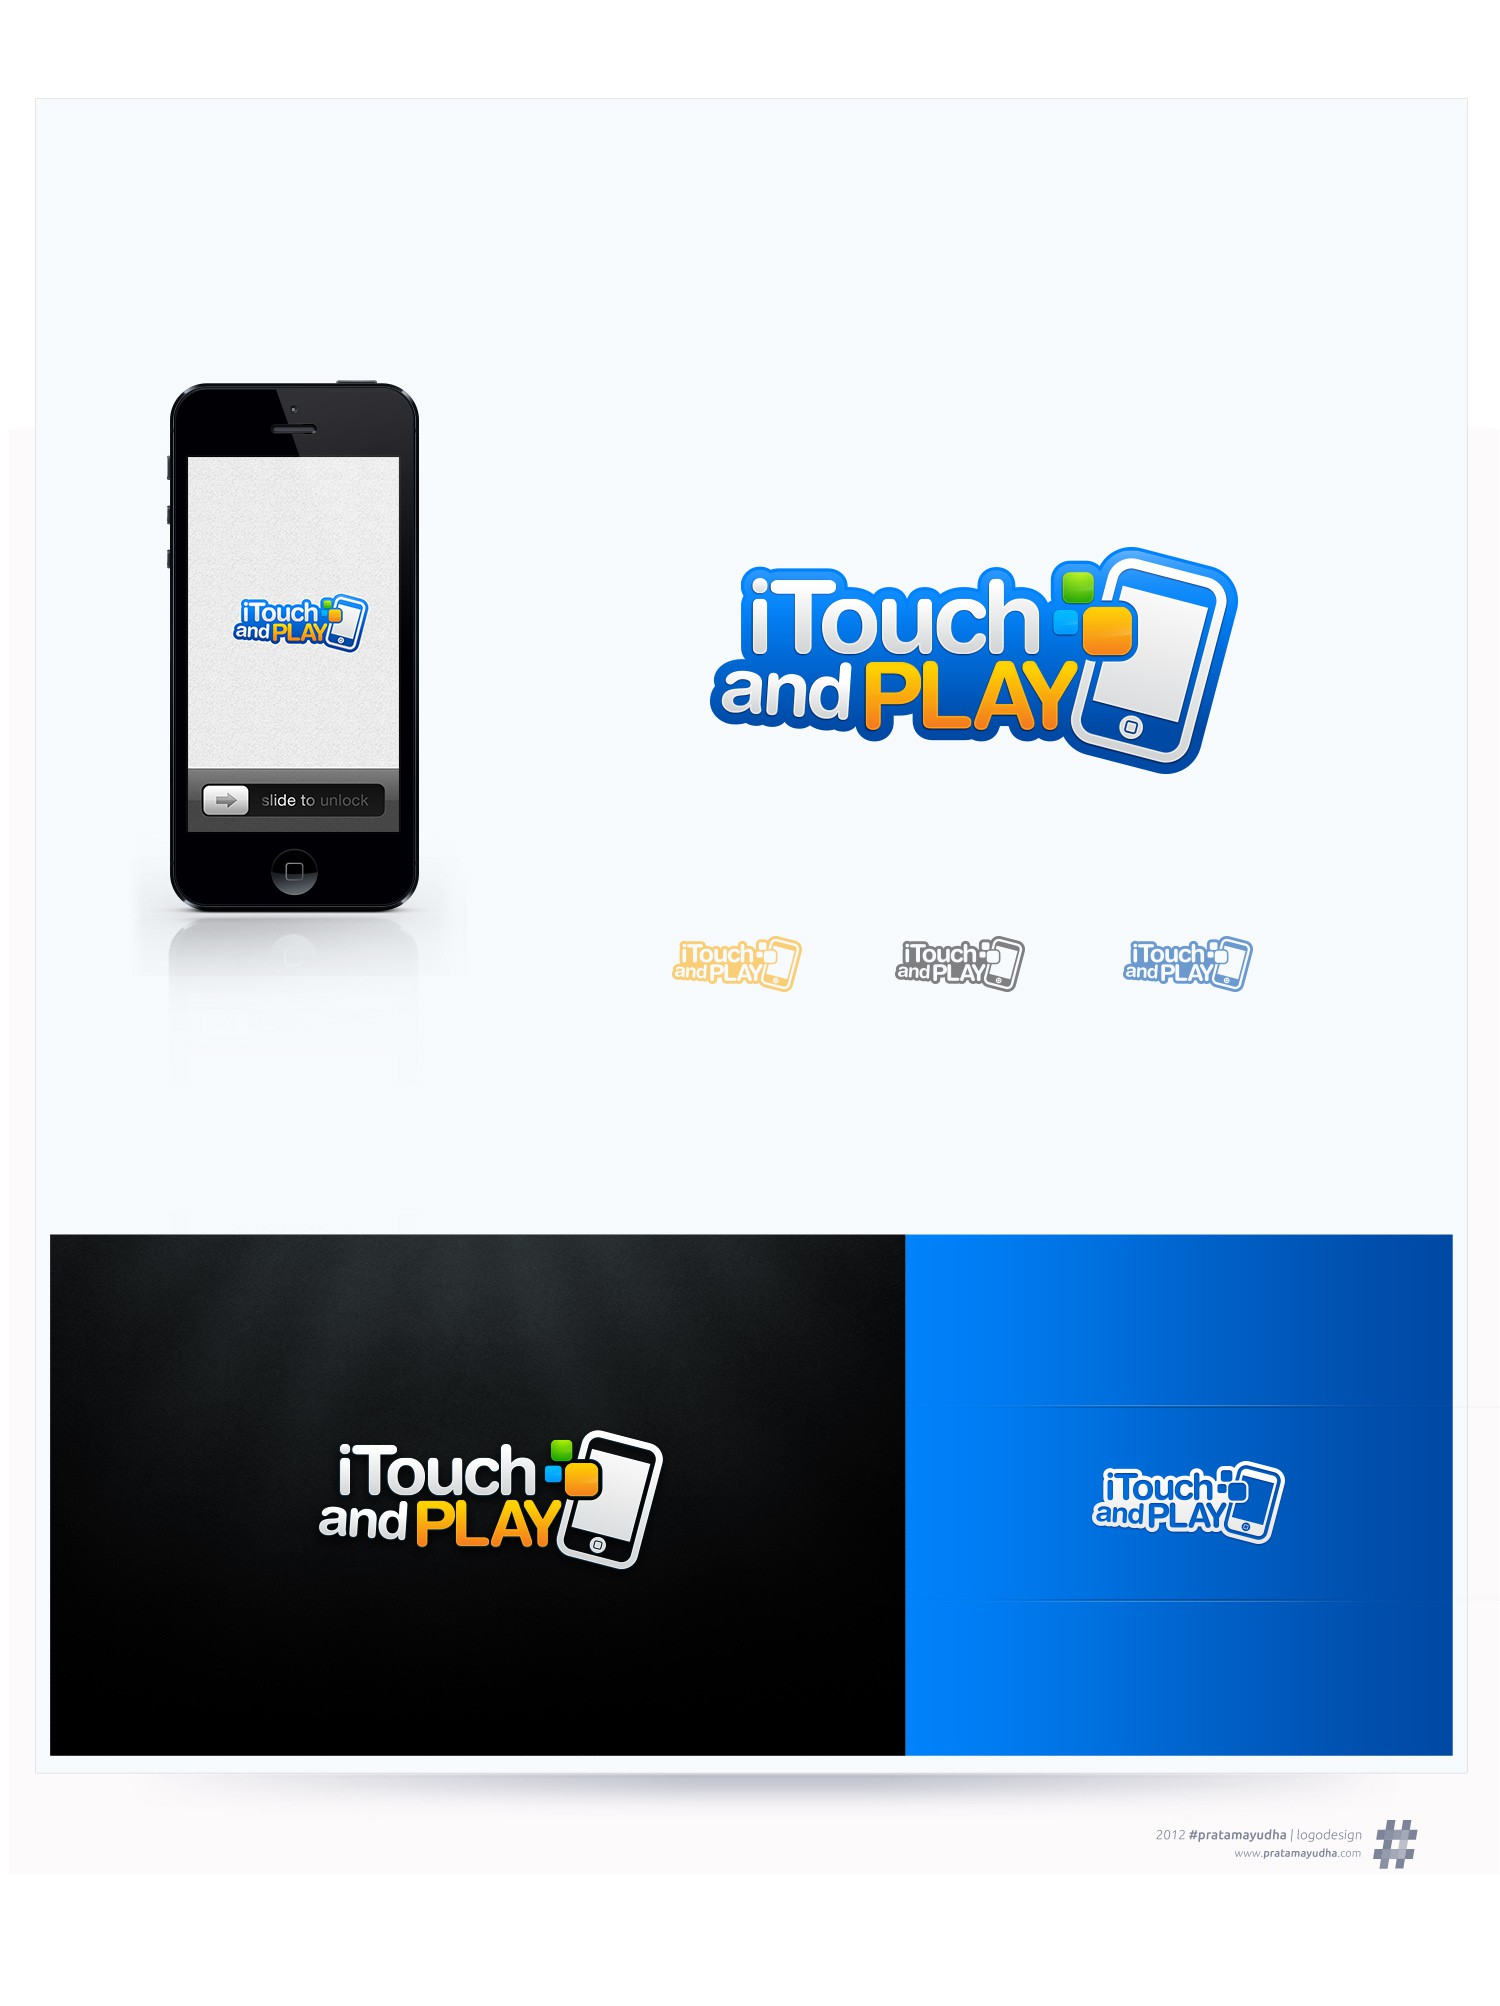 *Prize guaranteed* New logo for iPhone/ iPad Gaming website 'iTouch and Play'